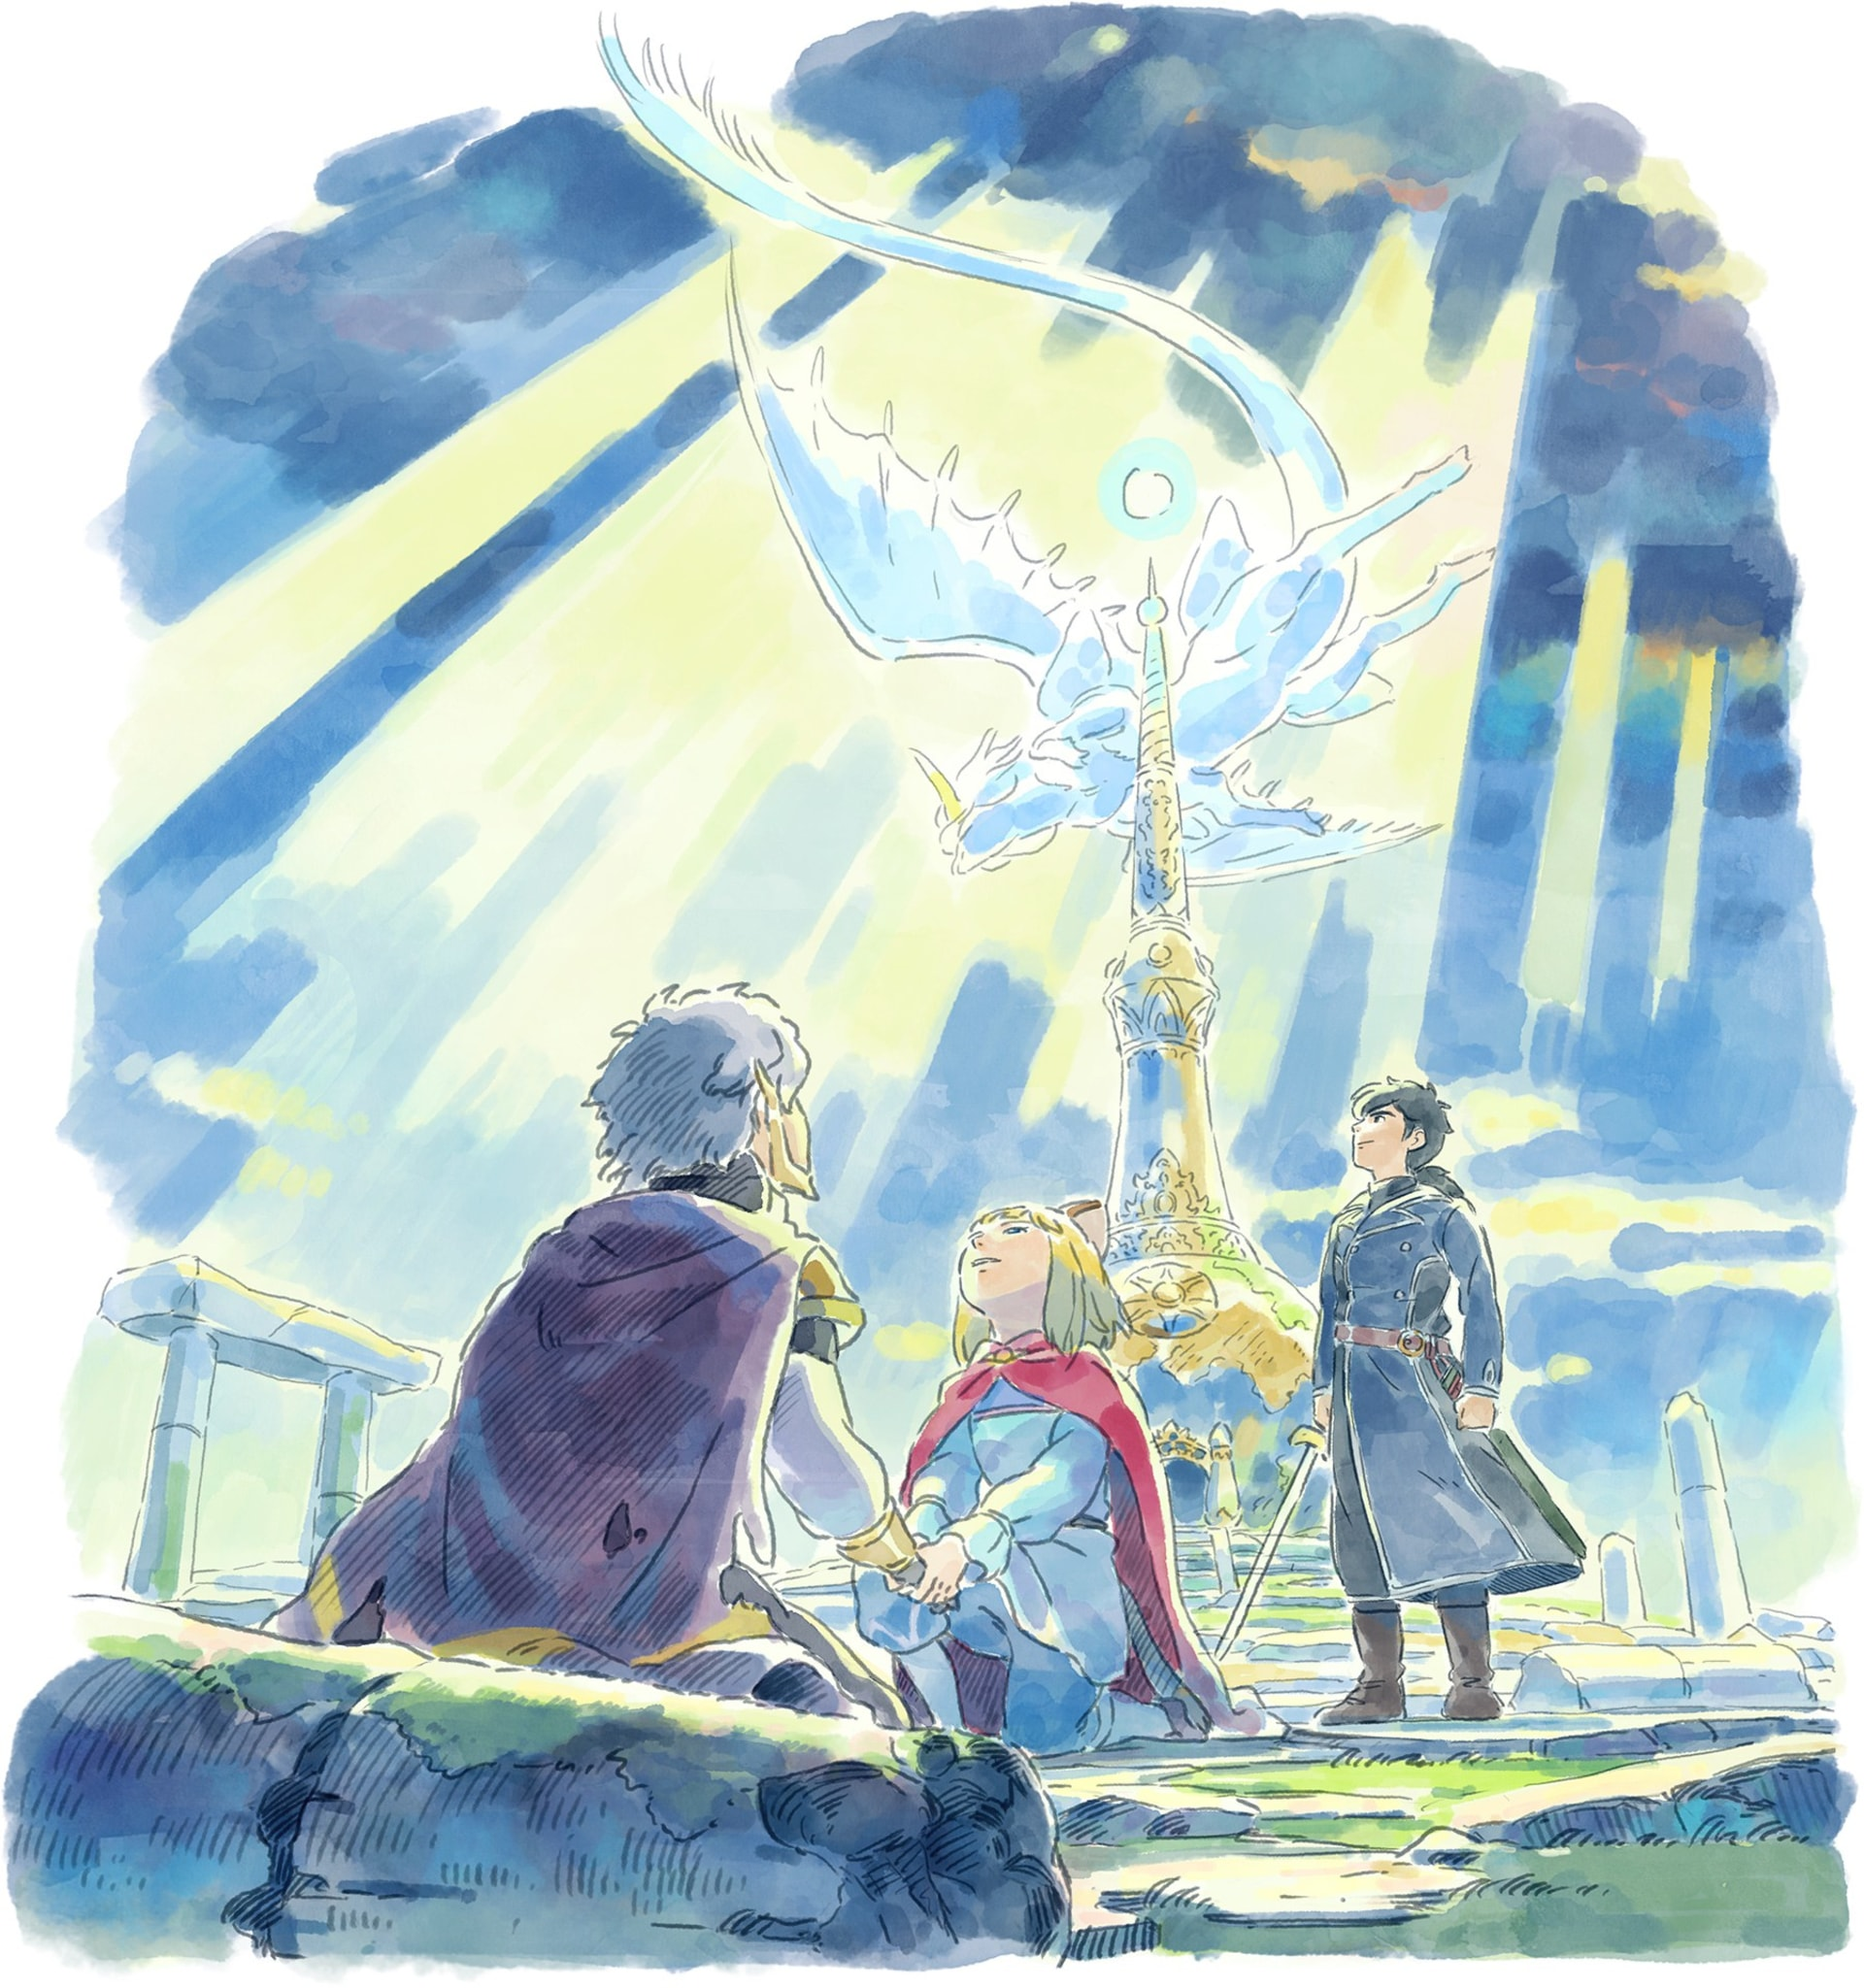 The Enchanting Art Style of Ni no Kuni II